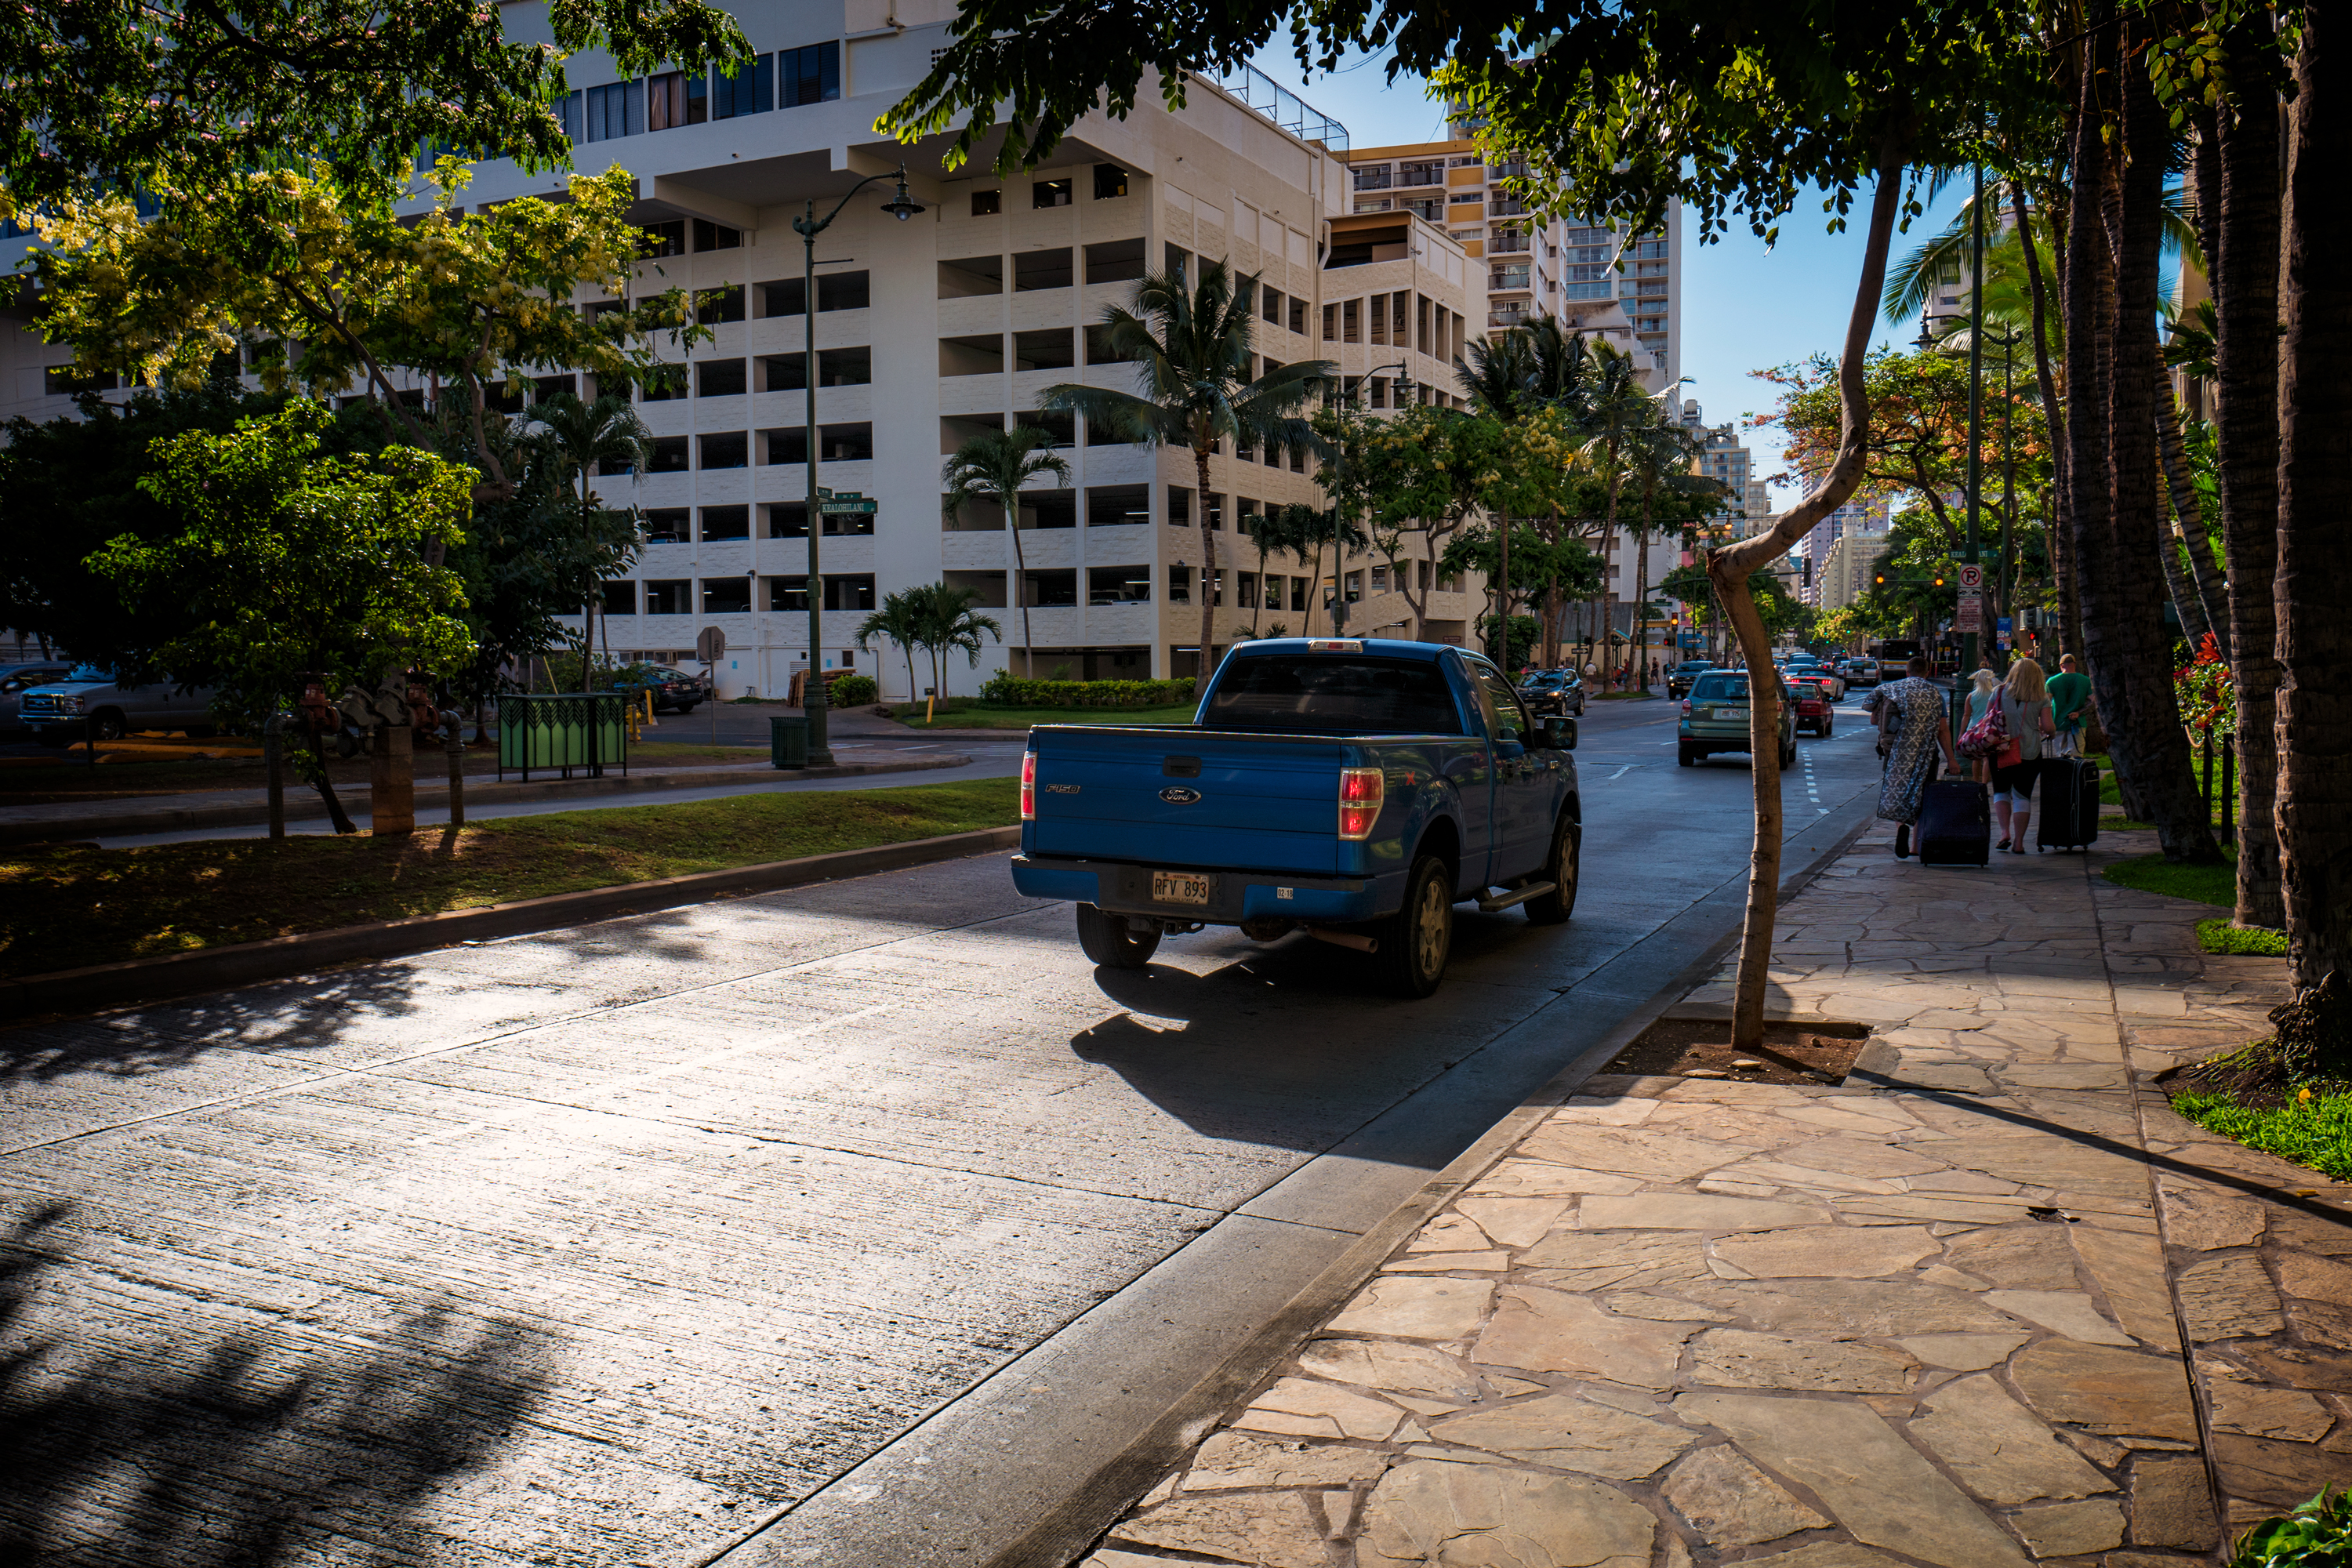 Late Afternoon, Kuhio Ave.